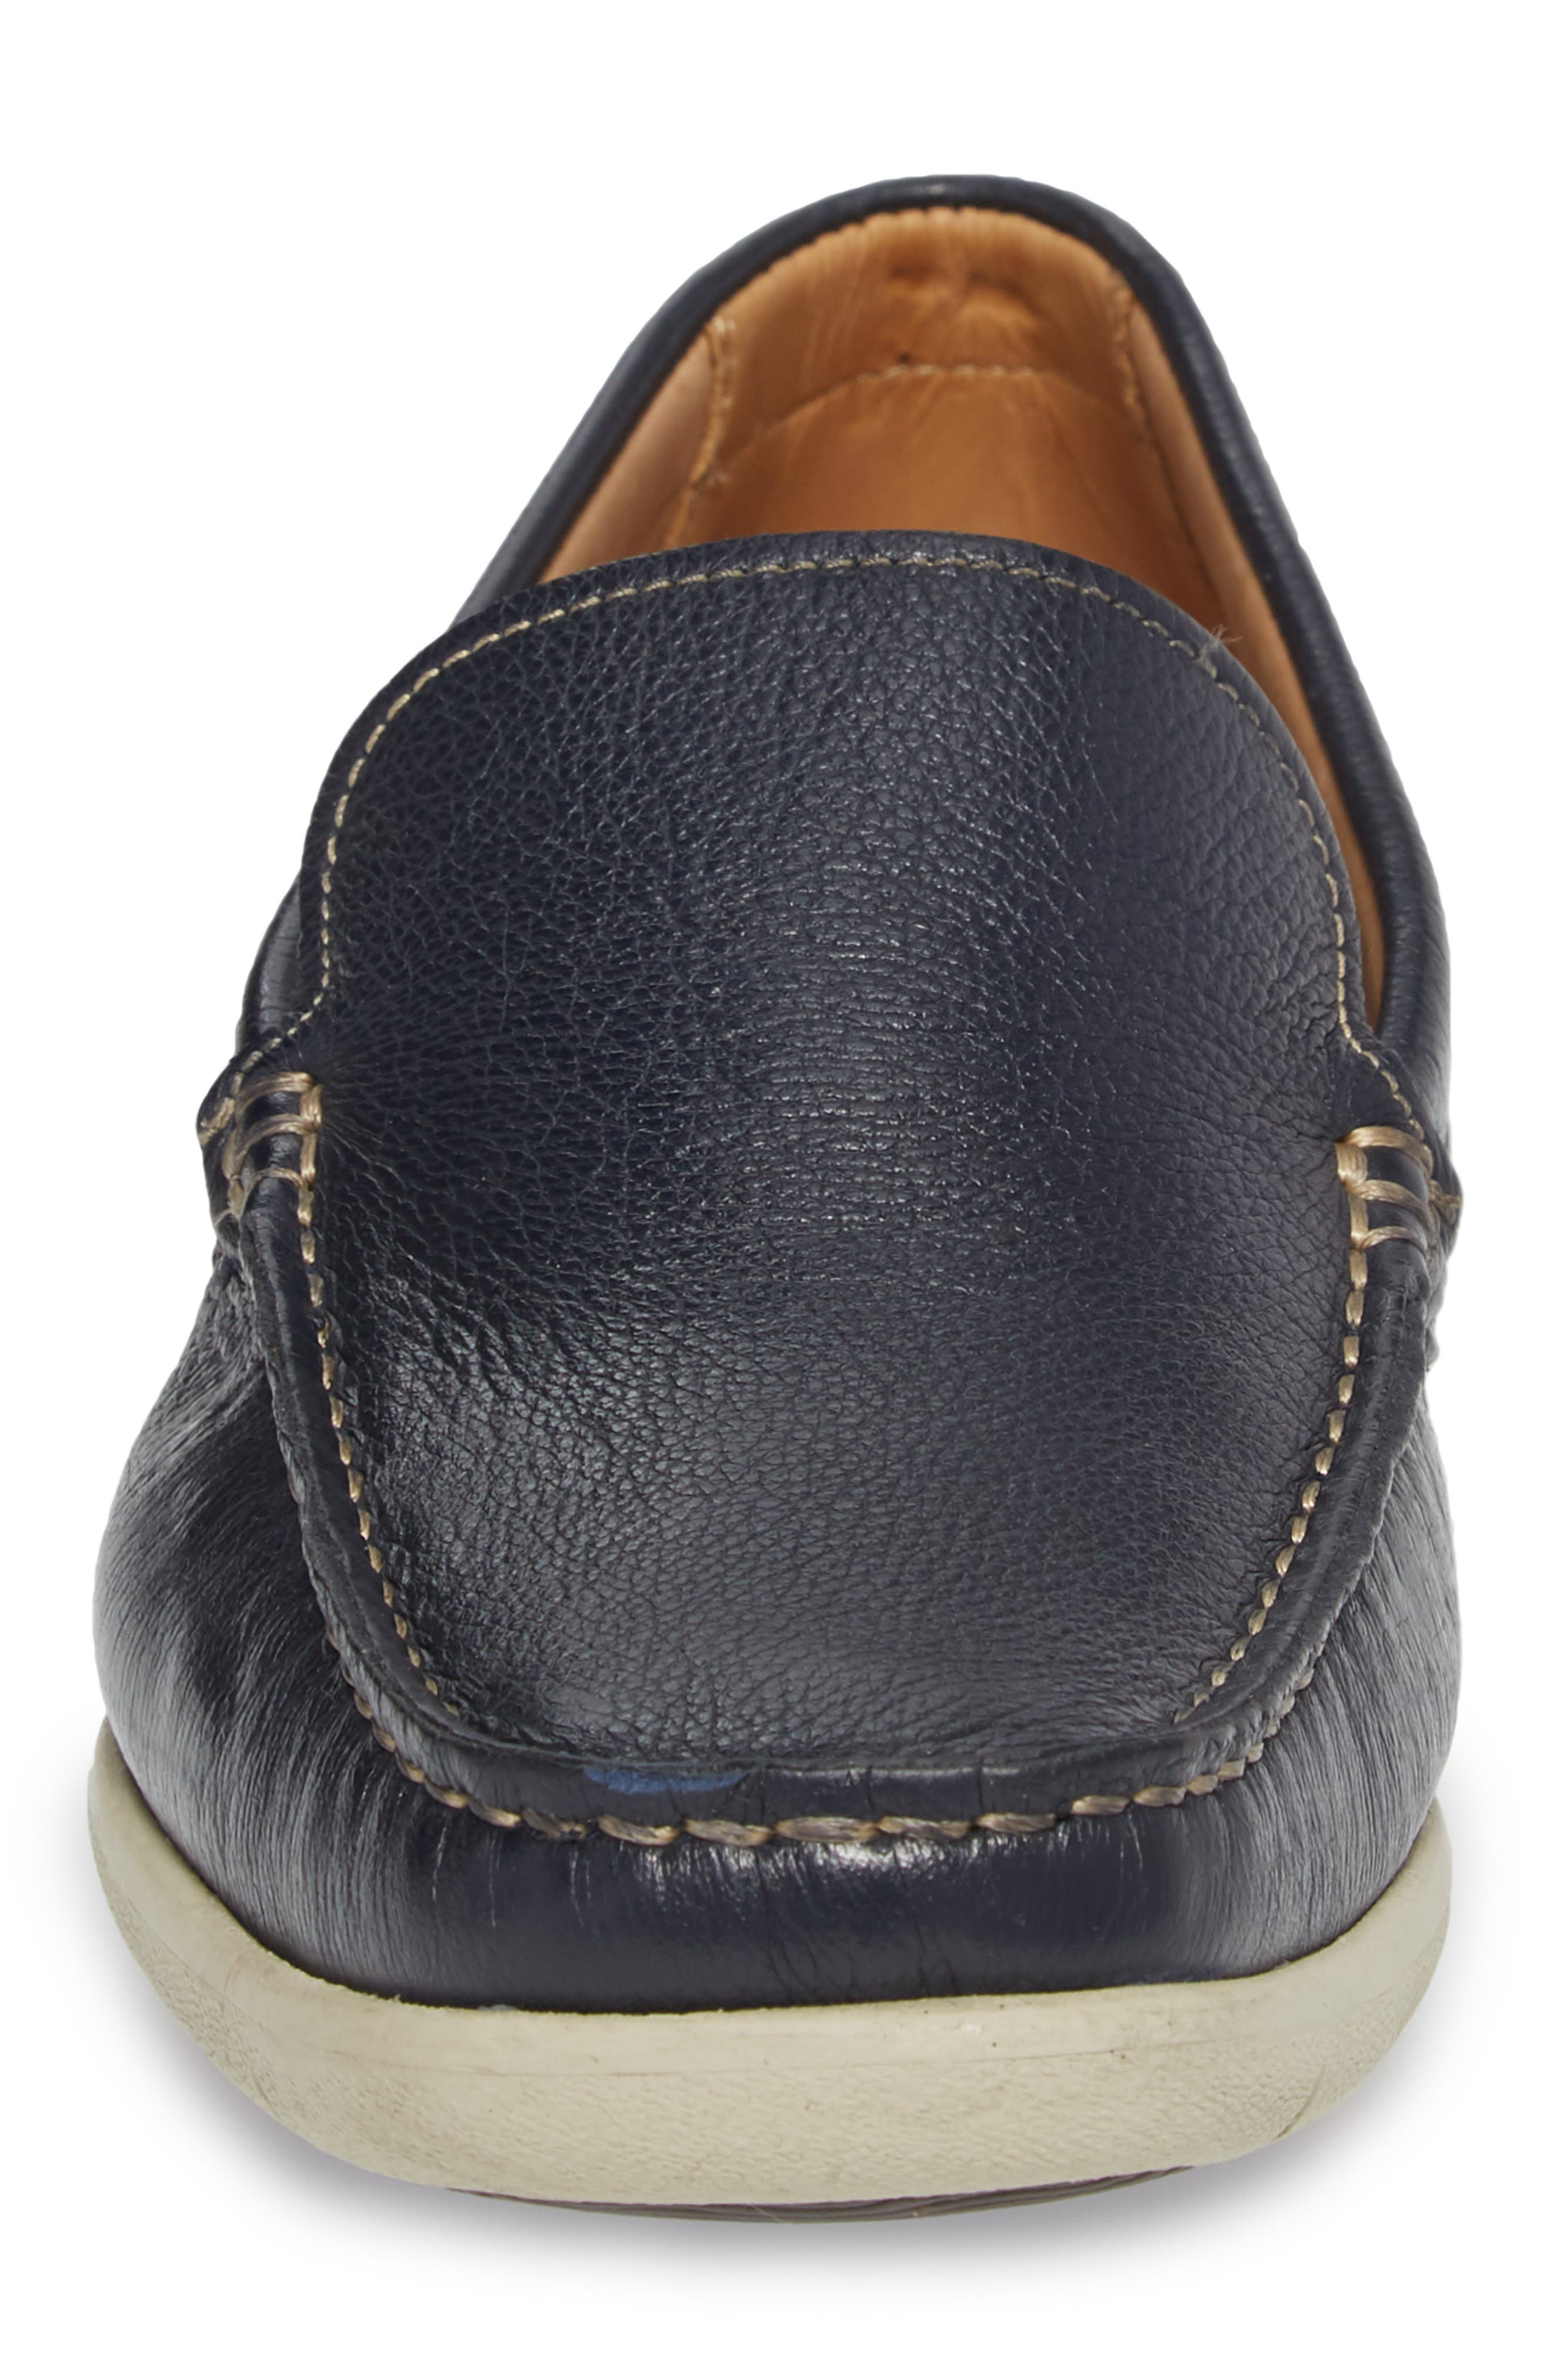 Calistoga Loafer,                             Alternate thumbnail 4, color,                             Navy Leather